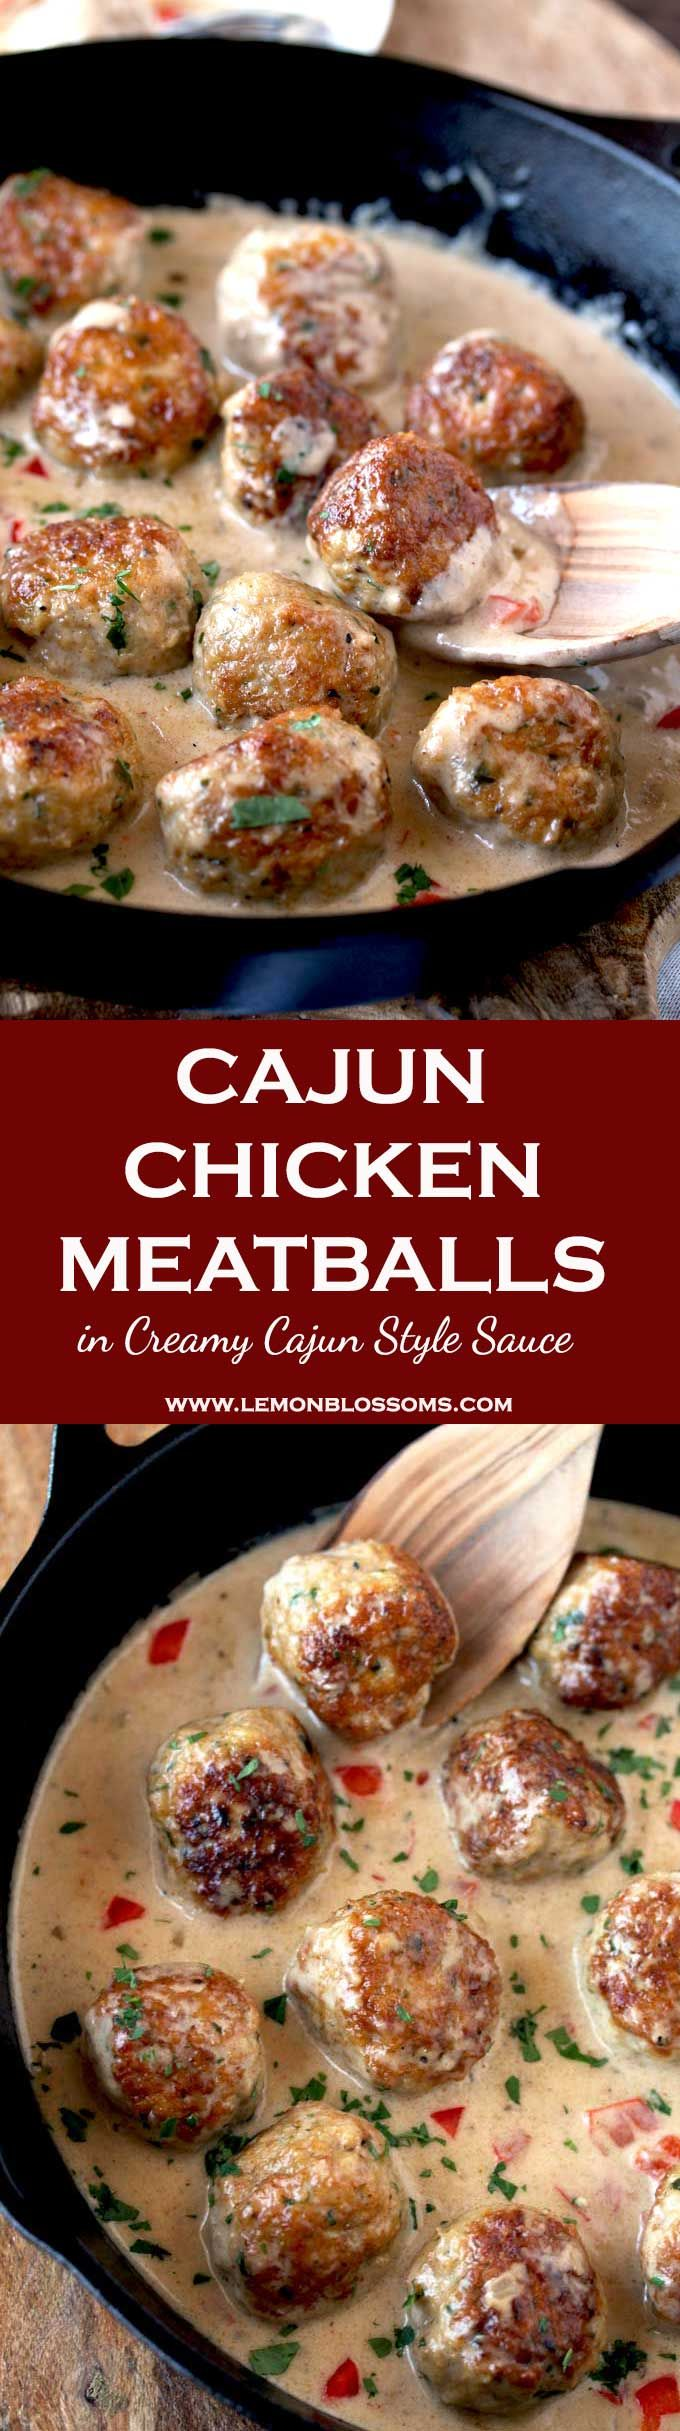 Pin By Laurie Cwikla On A Recipes In 2020 Chicken Recipes Recipes Chicken Meatballs